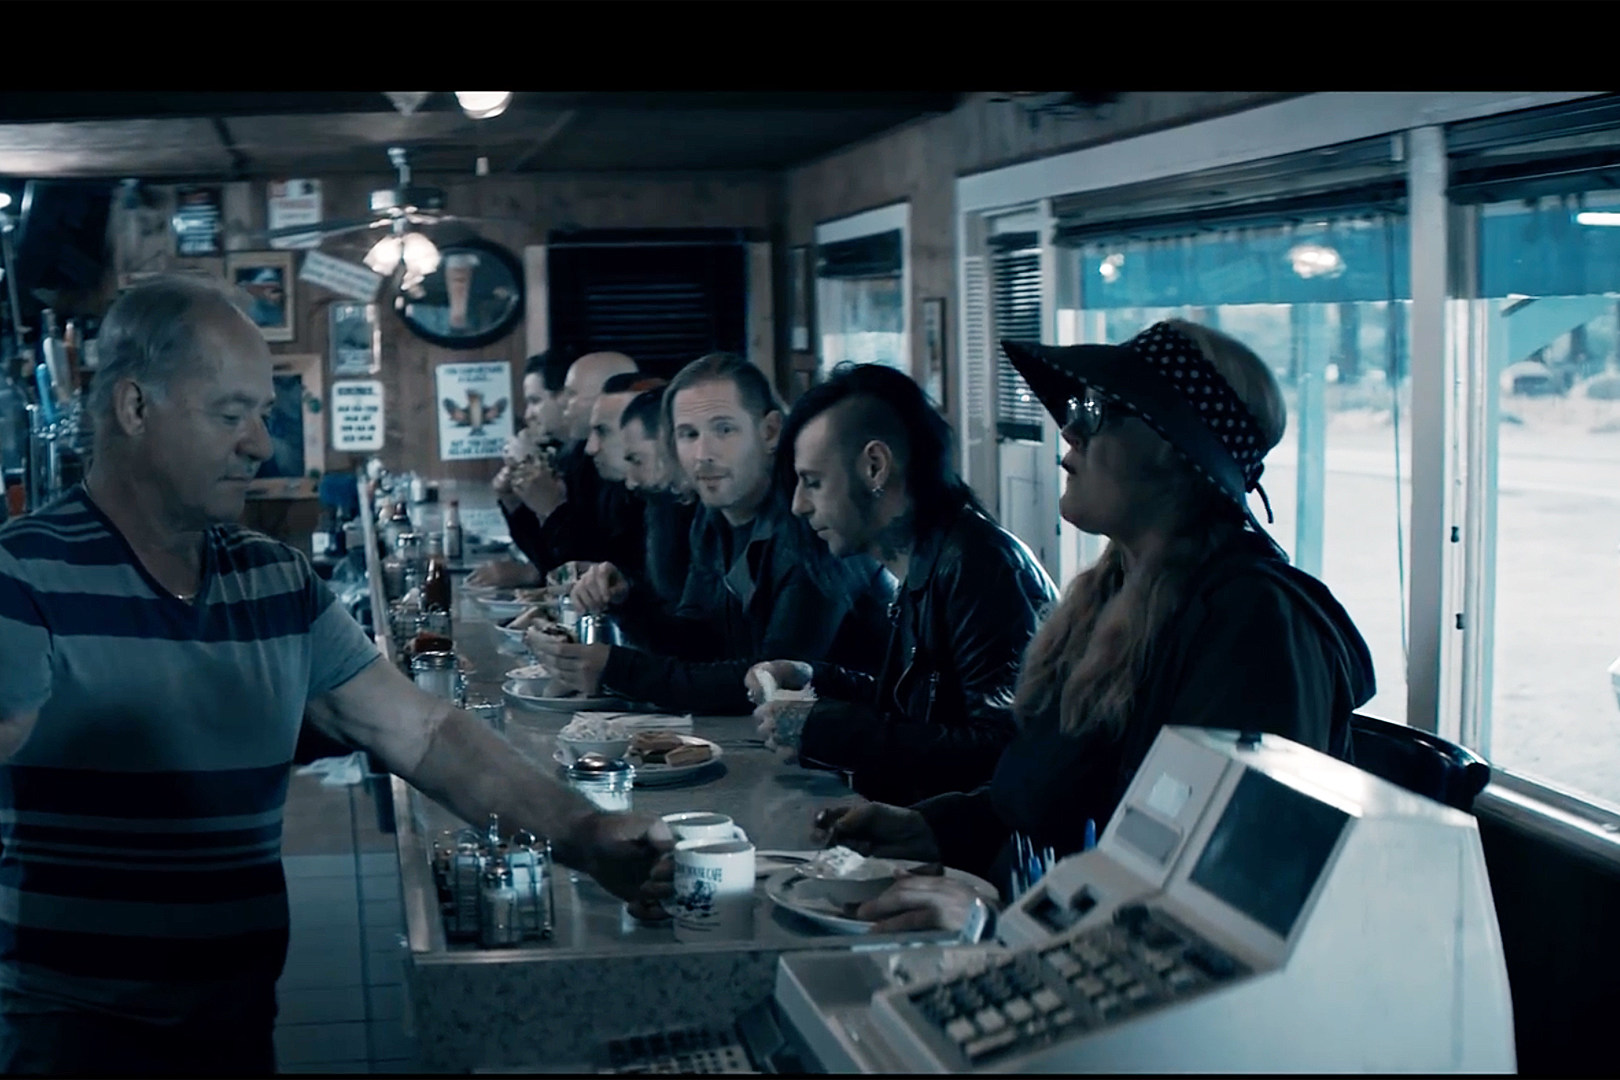 Stone Sour Turn Dark With 'The Uncanny Valley' Lyric Video